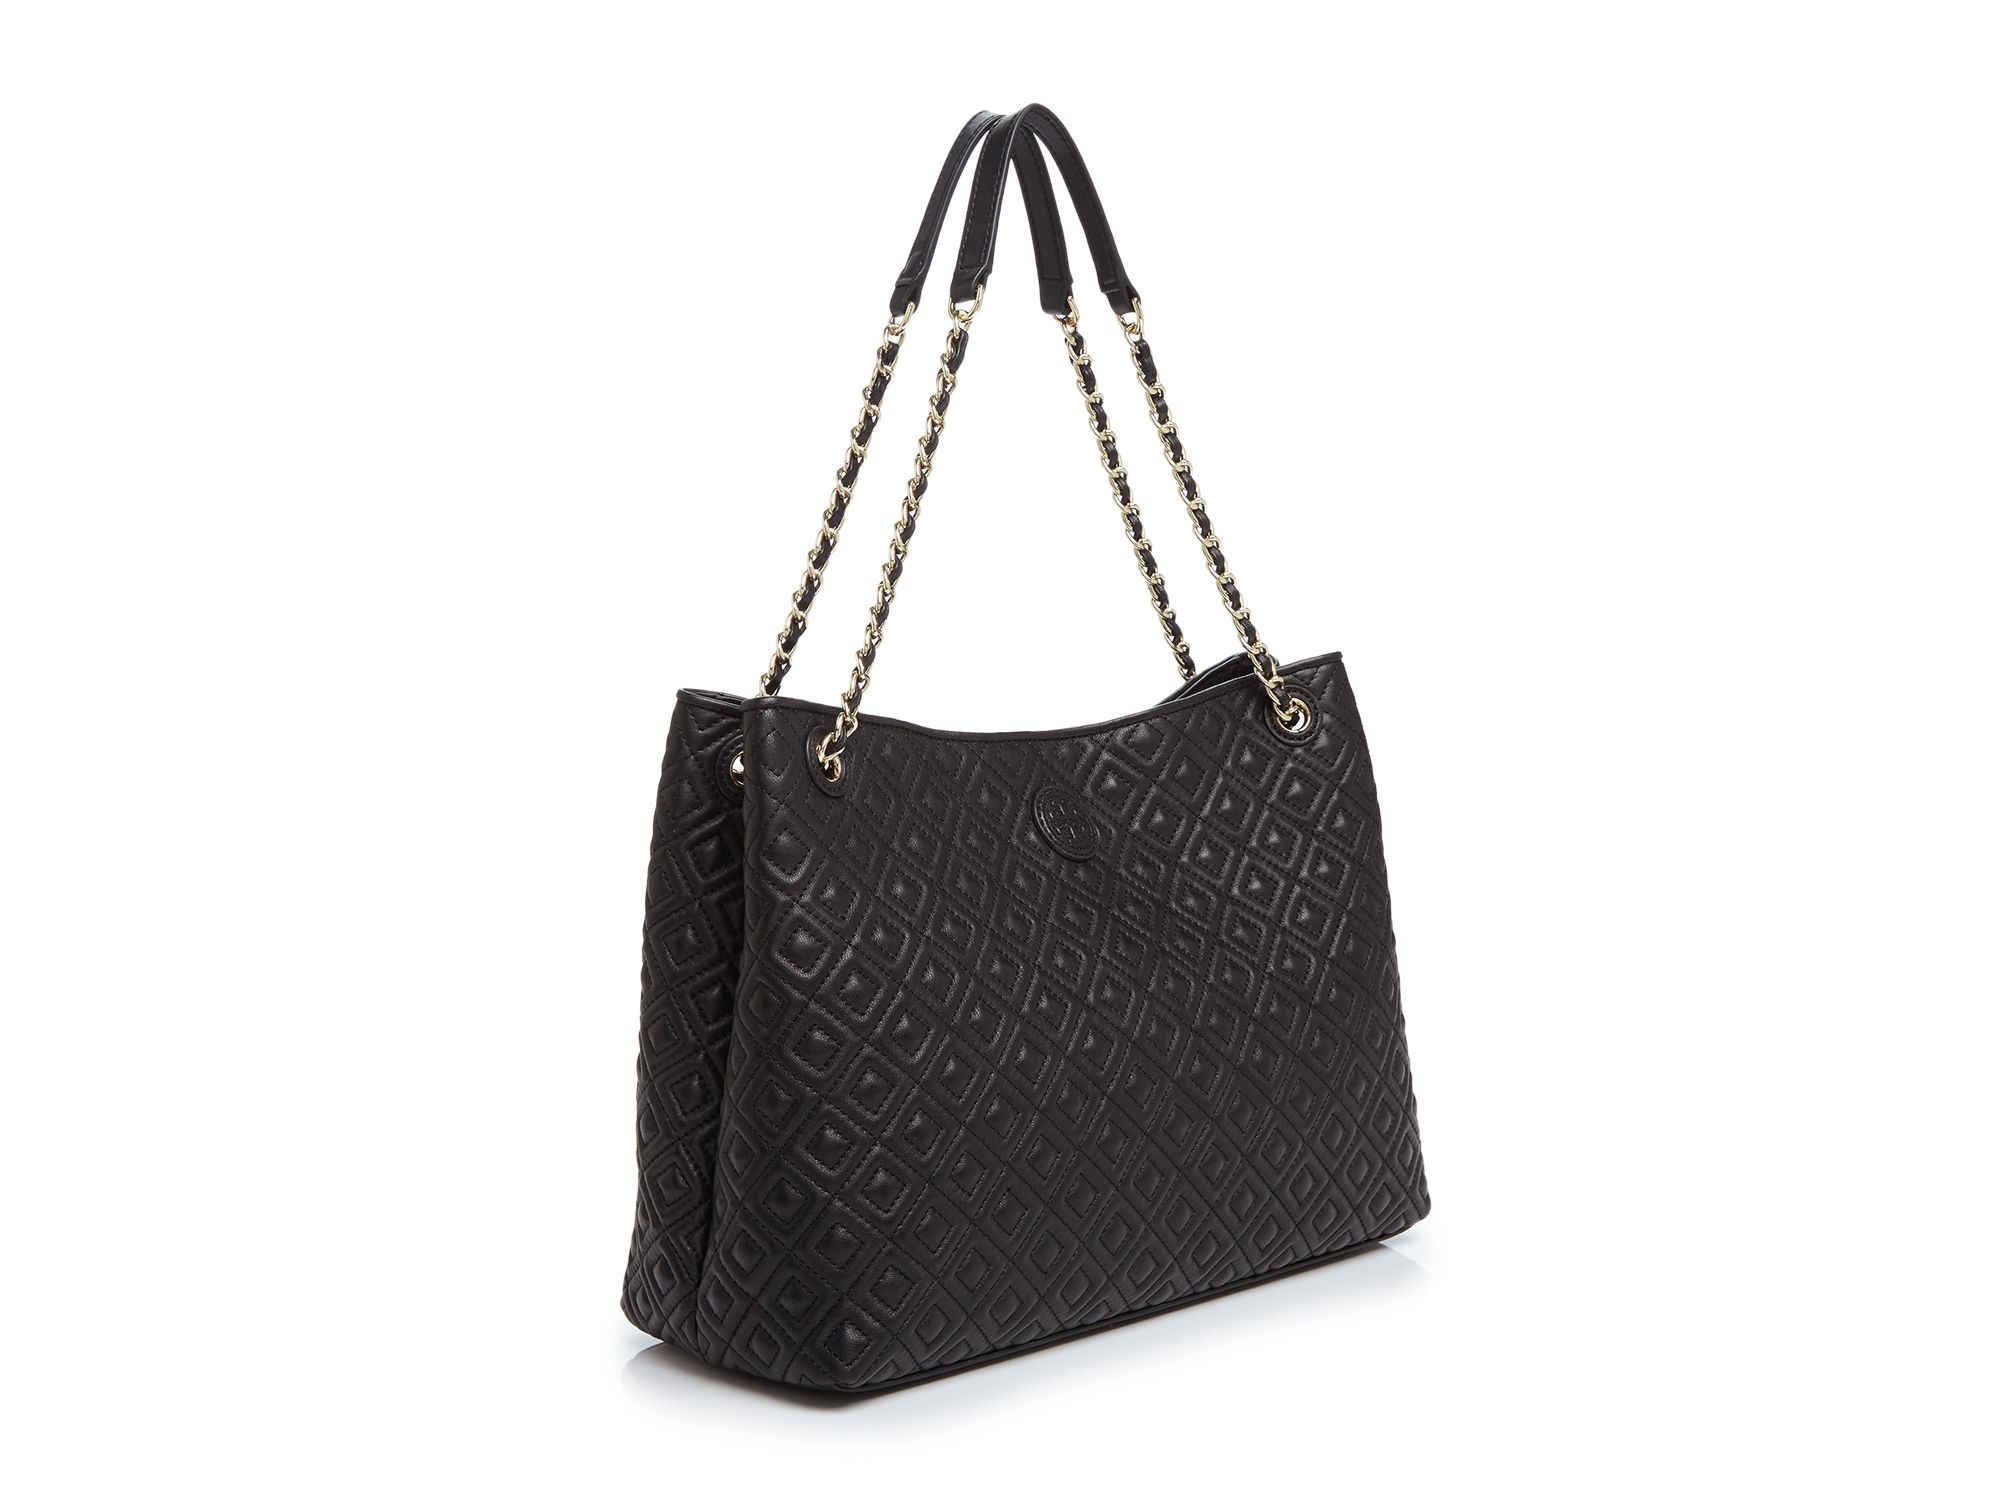 black quilt stella mccartney p mini women falabella quilted tote